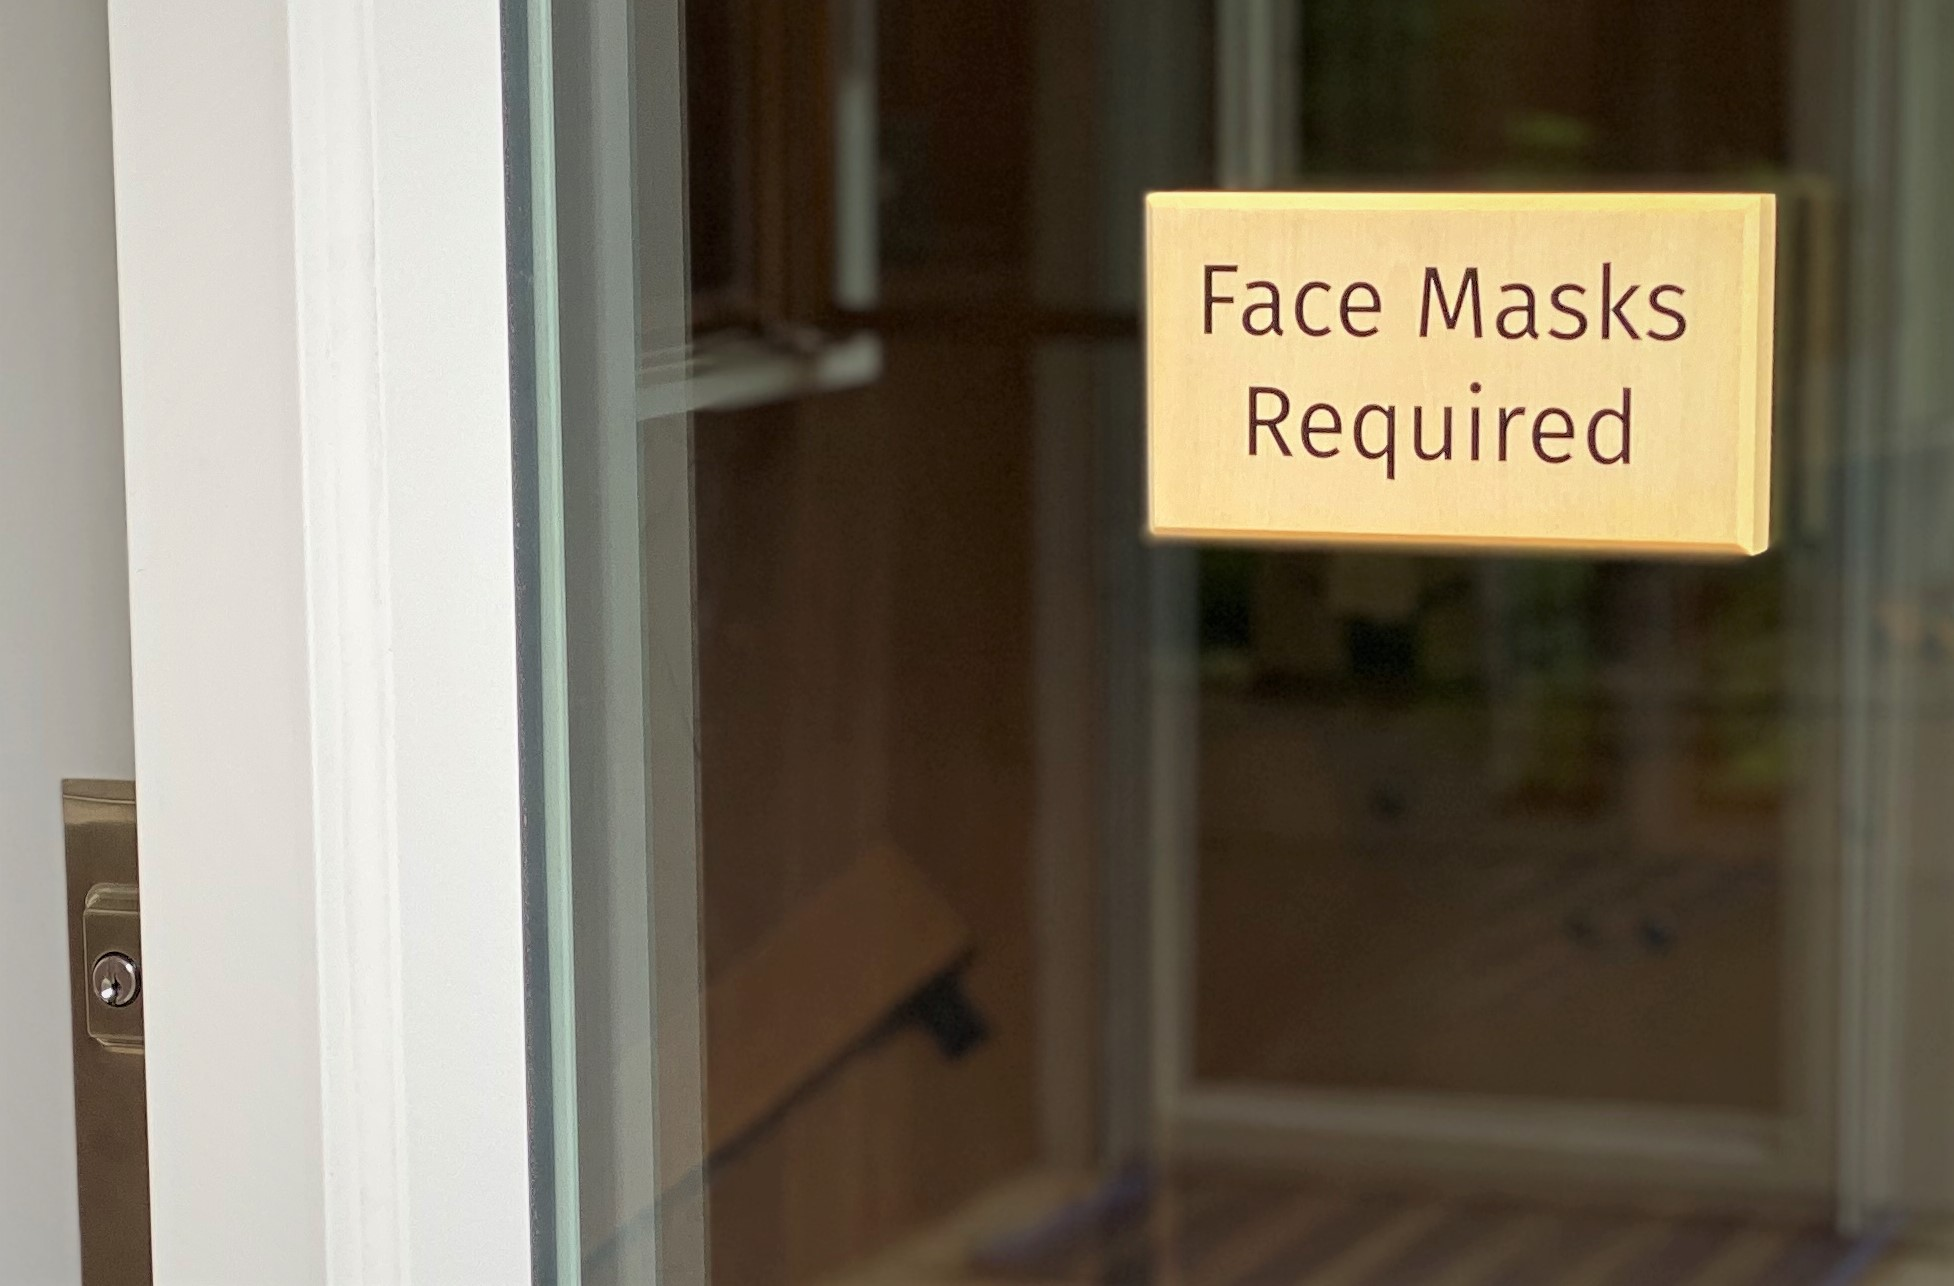 Face masks required sign on window